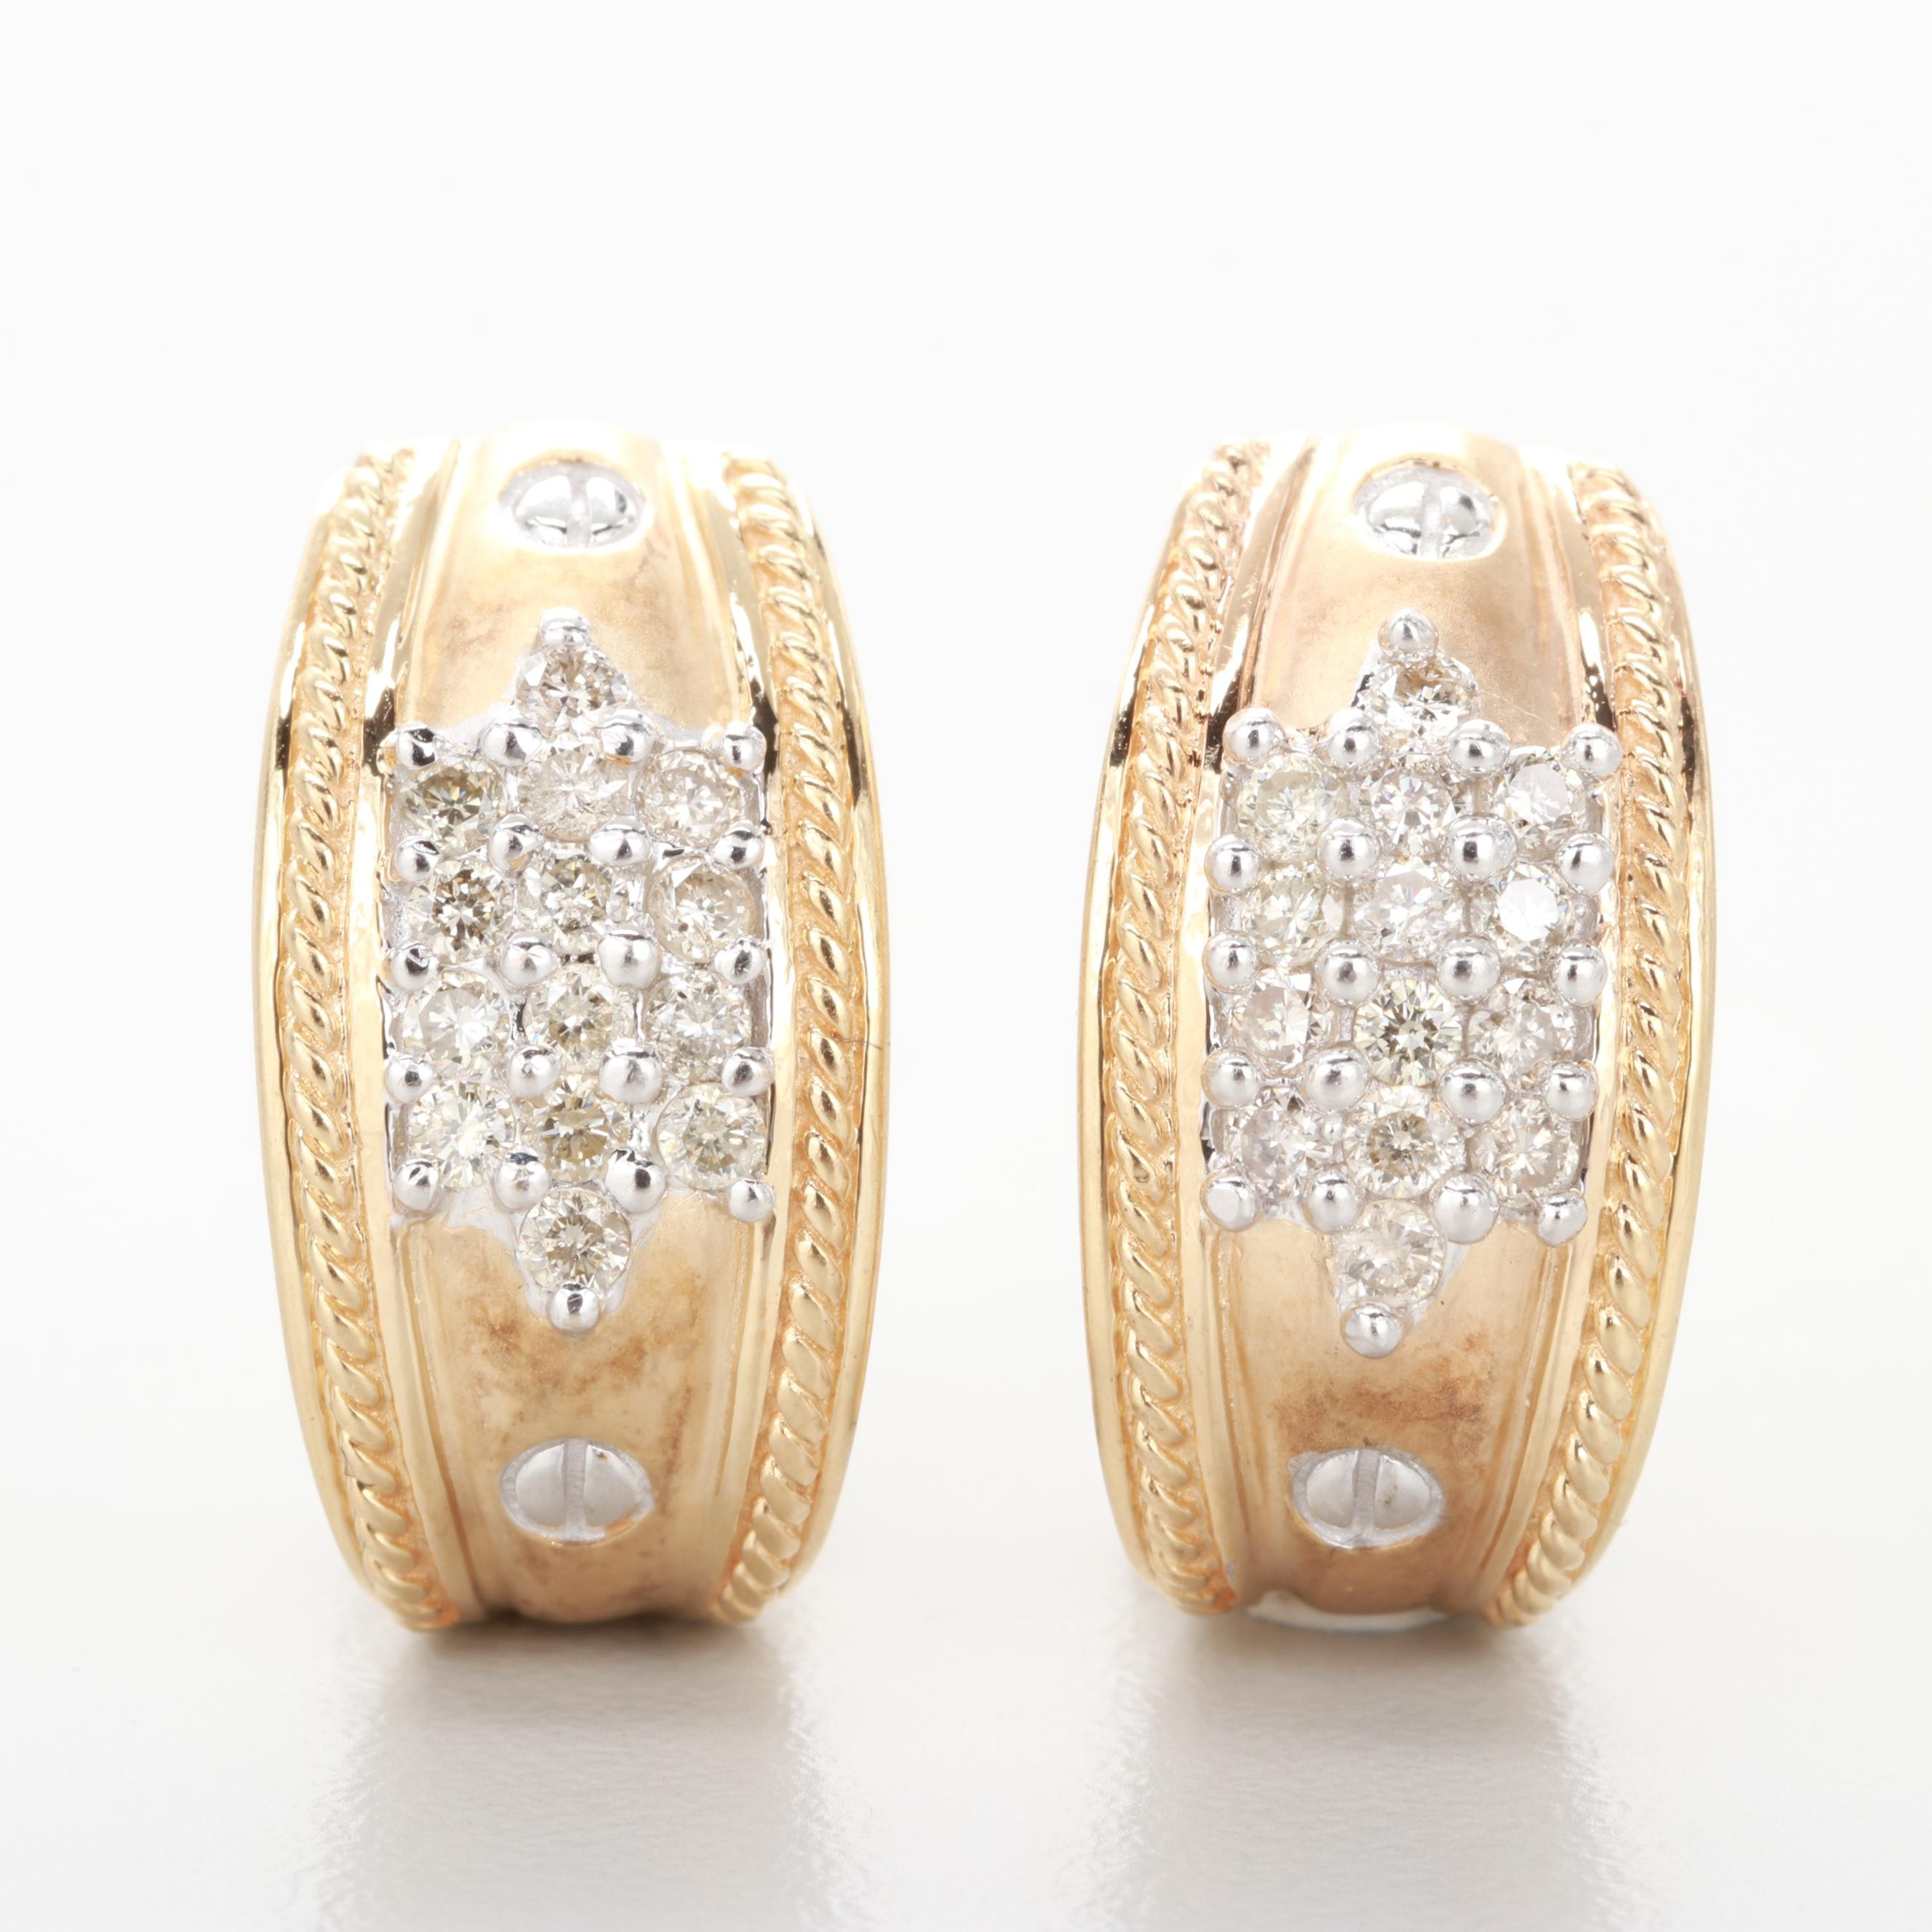 14K Yellow Gold Diamond J Hoop Earrings